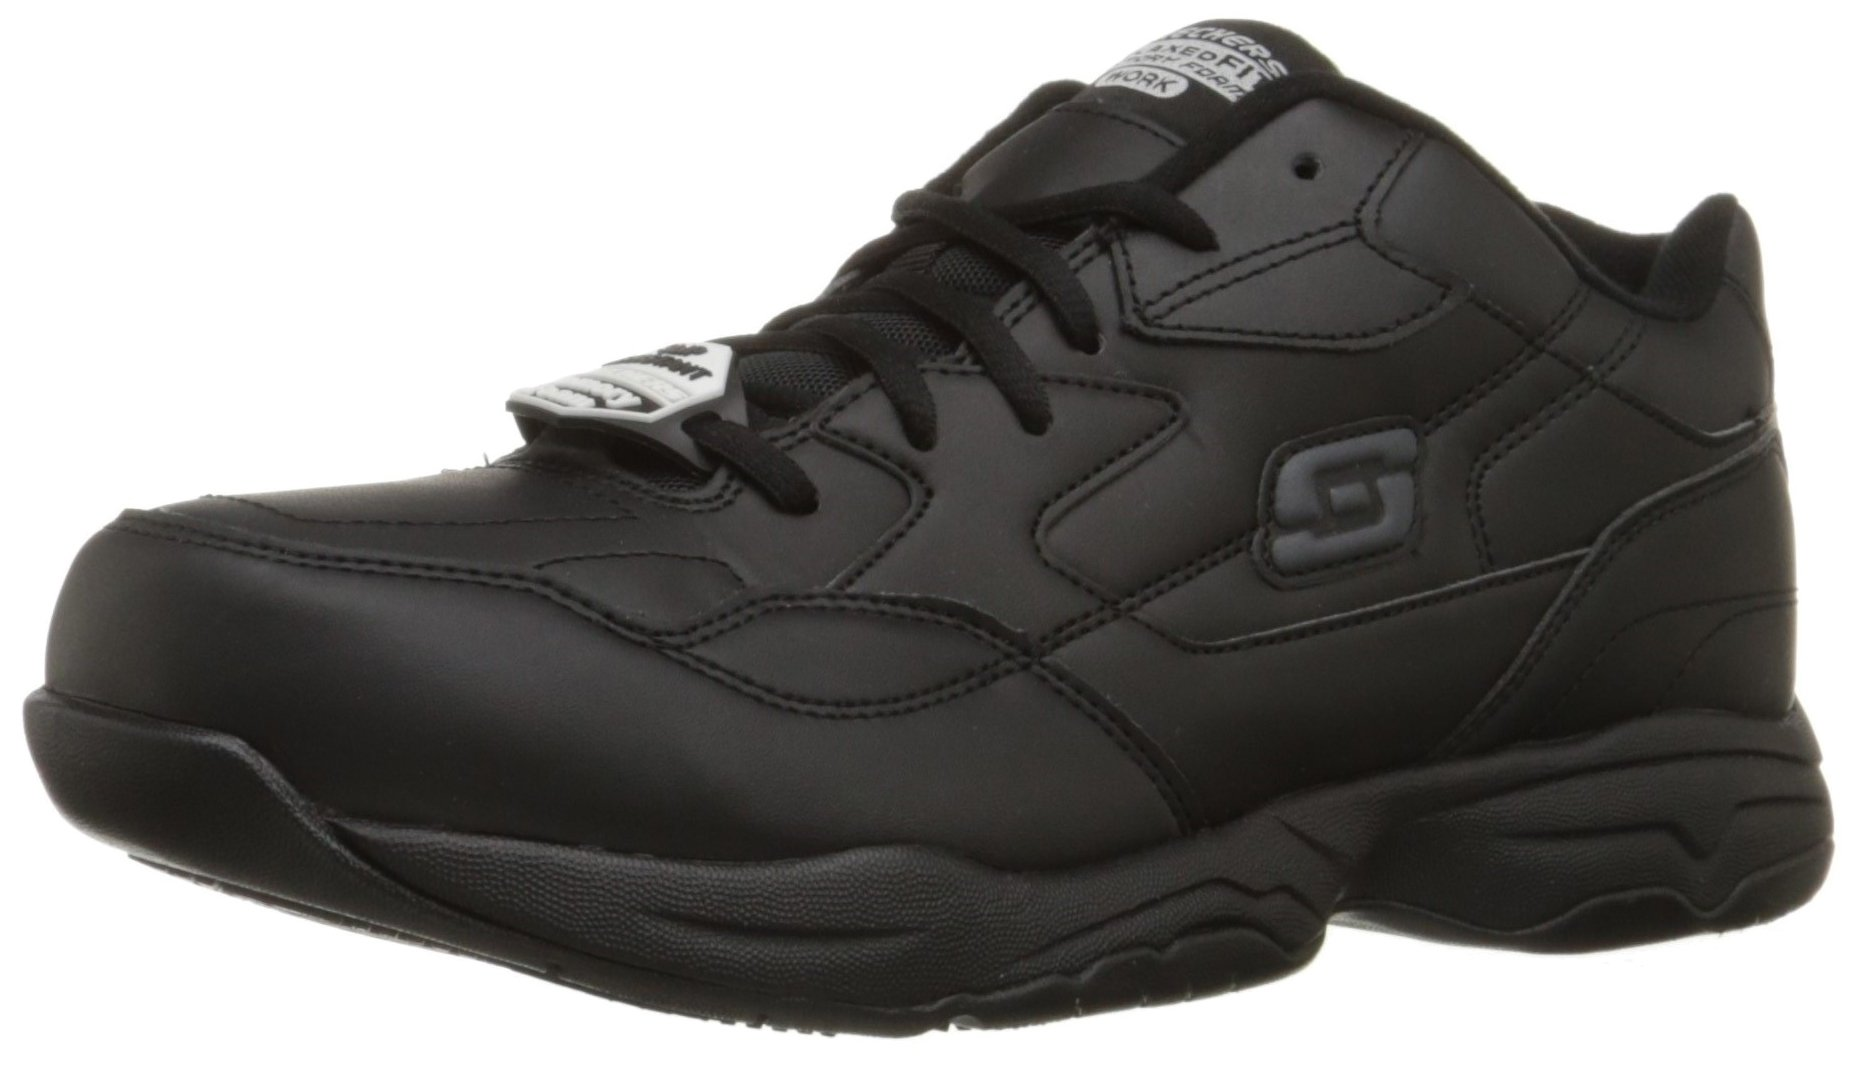 Skechers for Work Men's Felton Shoe, Black, 12 M US by Skechers